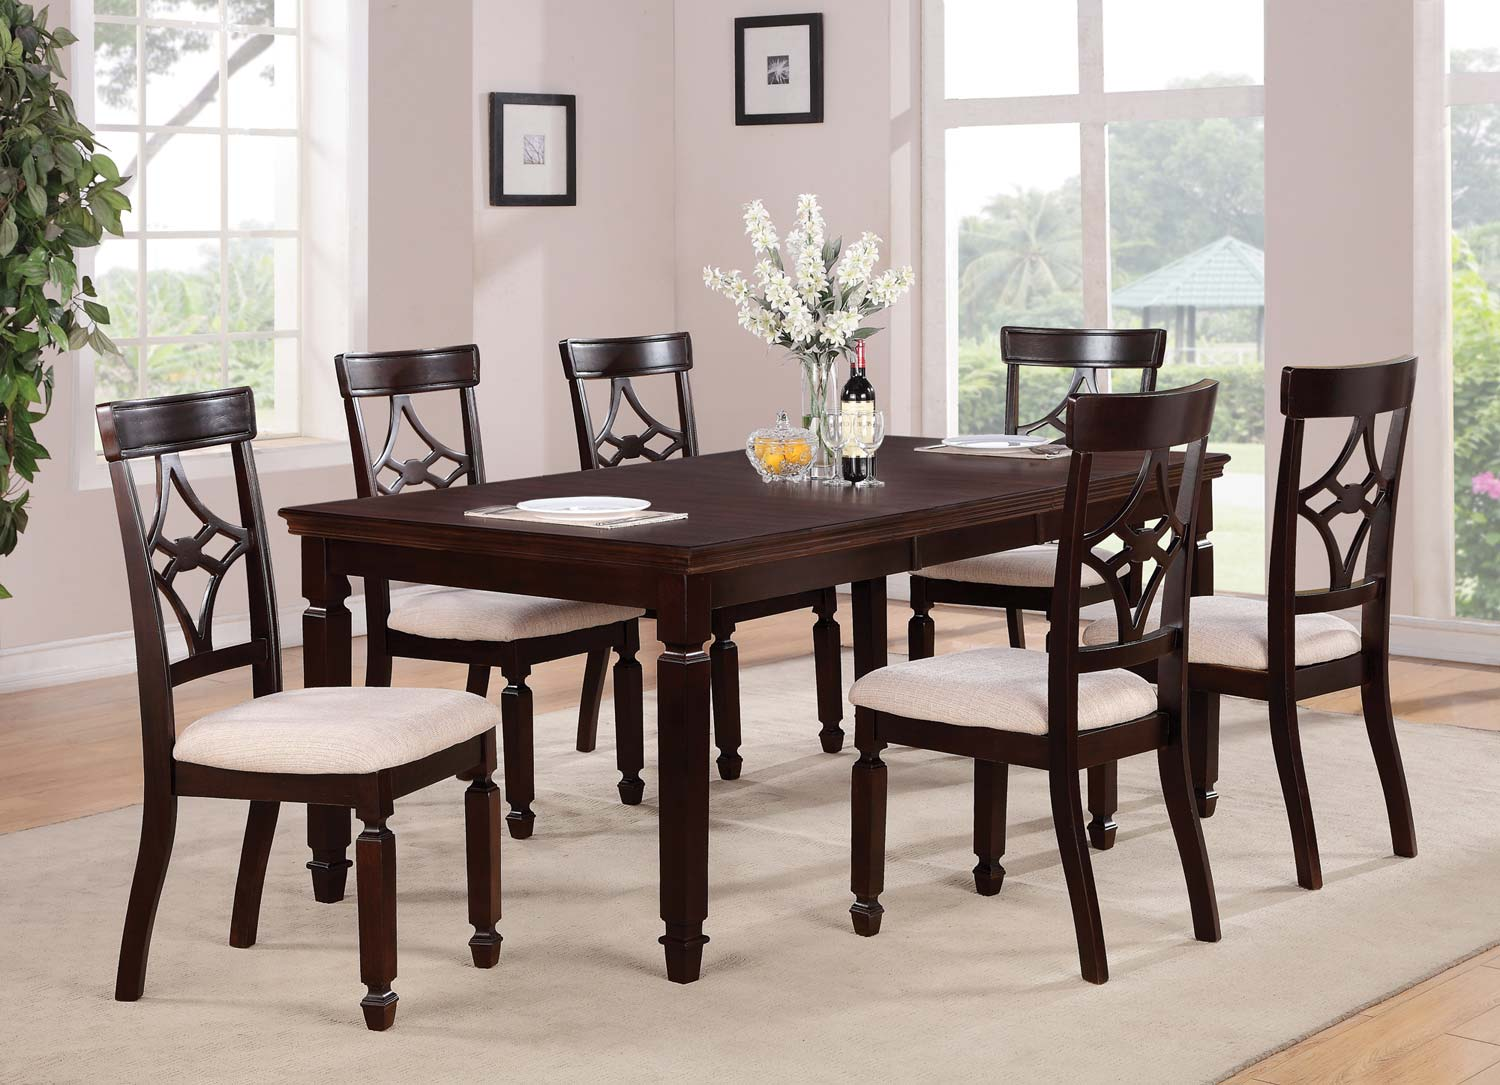 Coaster Maude Rectangular Dining Set - Cappuccino